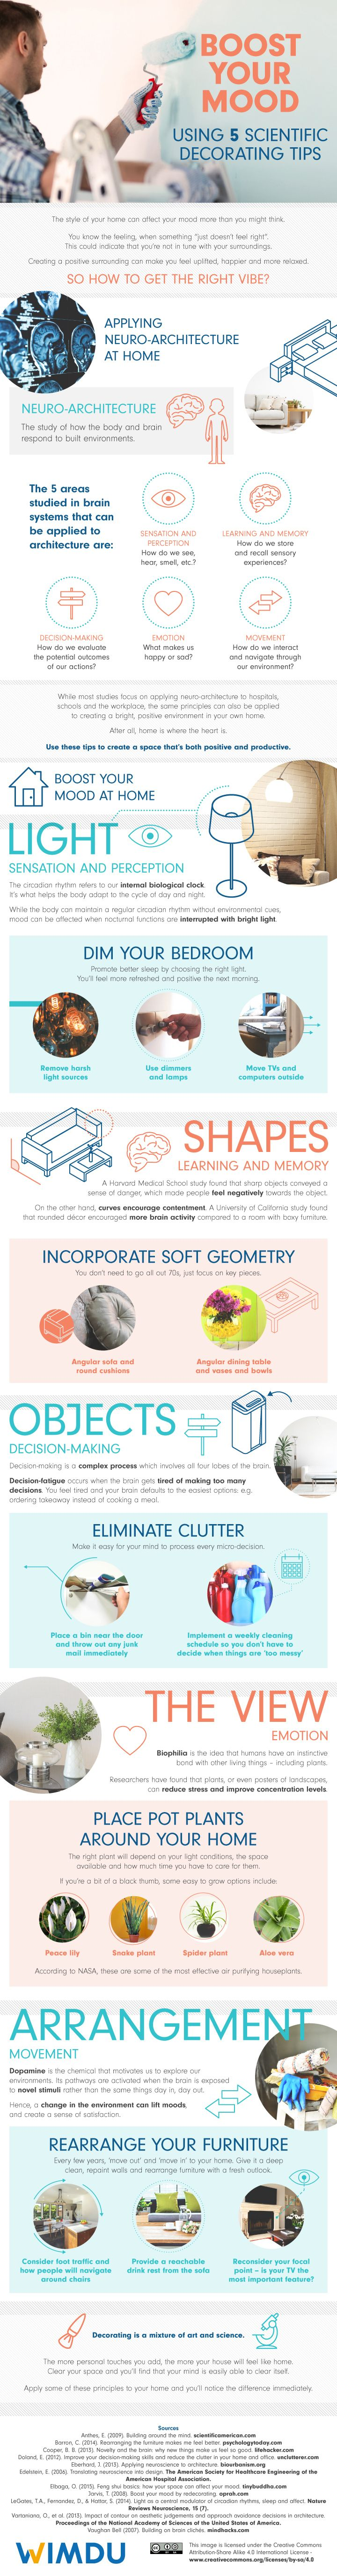 Boost your Mood Using 5 Scientific Decorating Tips #infographic